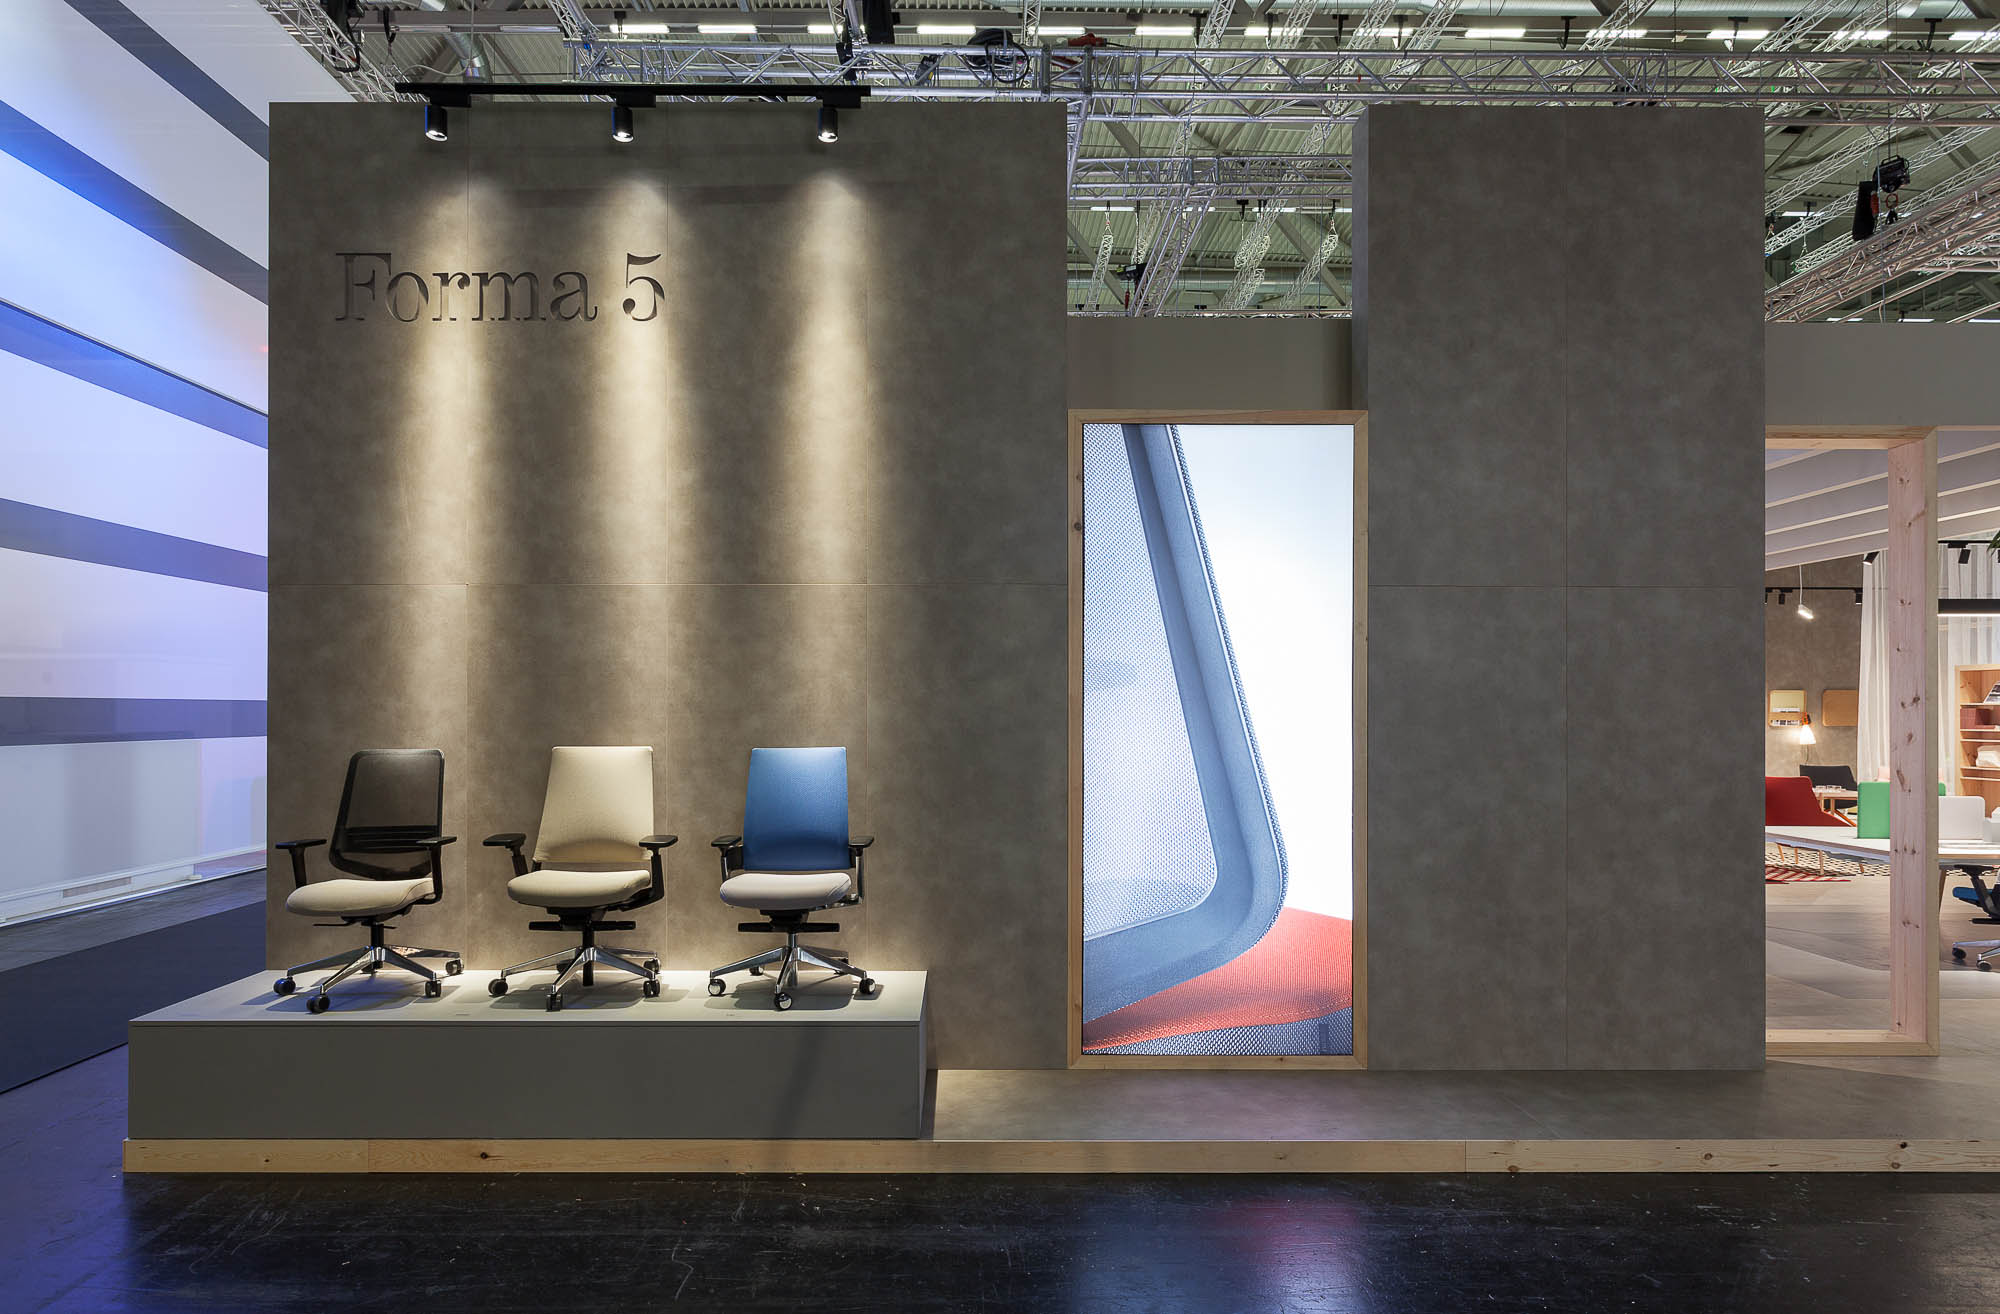 IMG_1713_Orgatec18_Forma5_181022-Edit_Retouched_LowRes